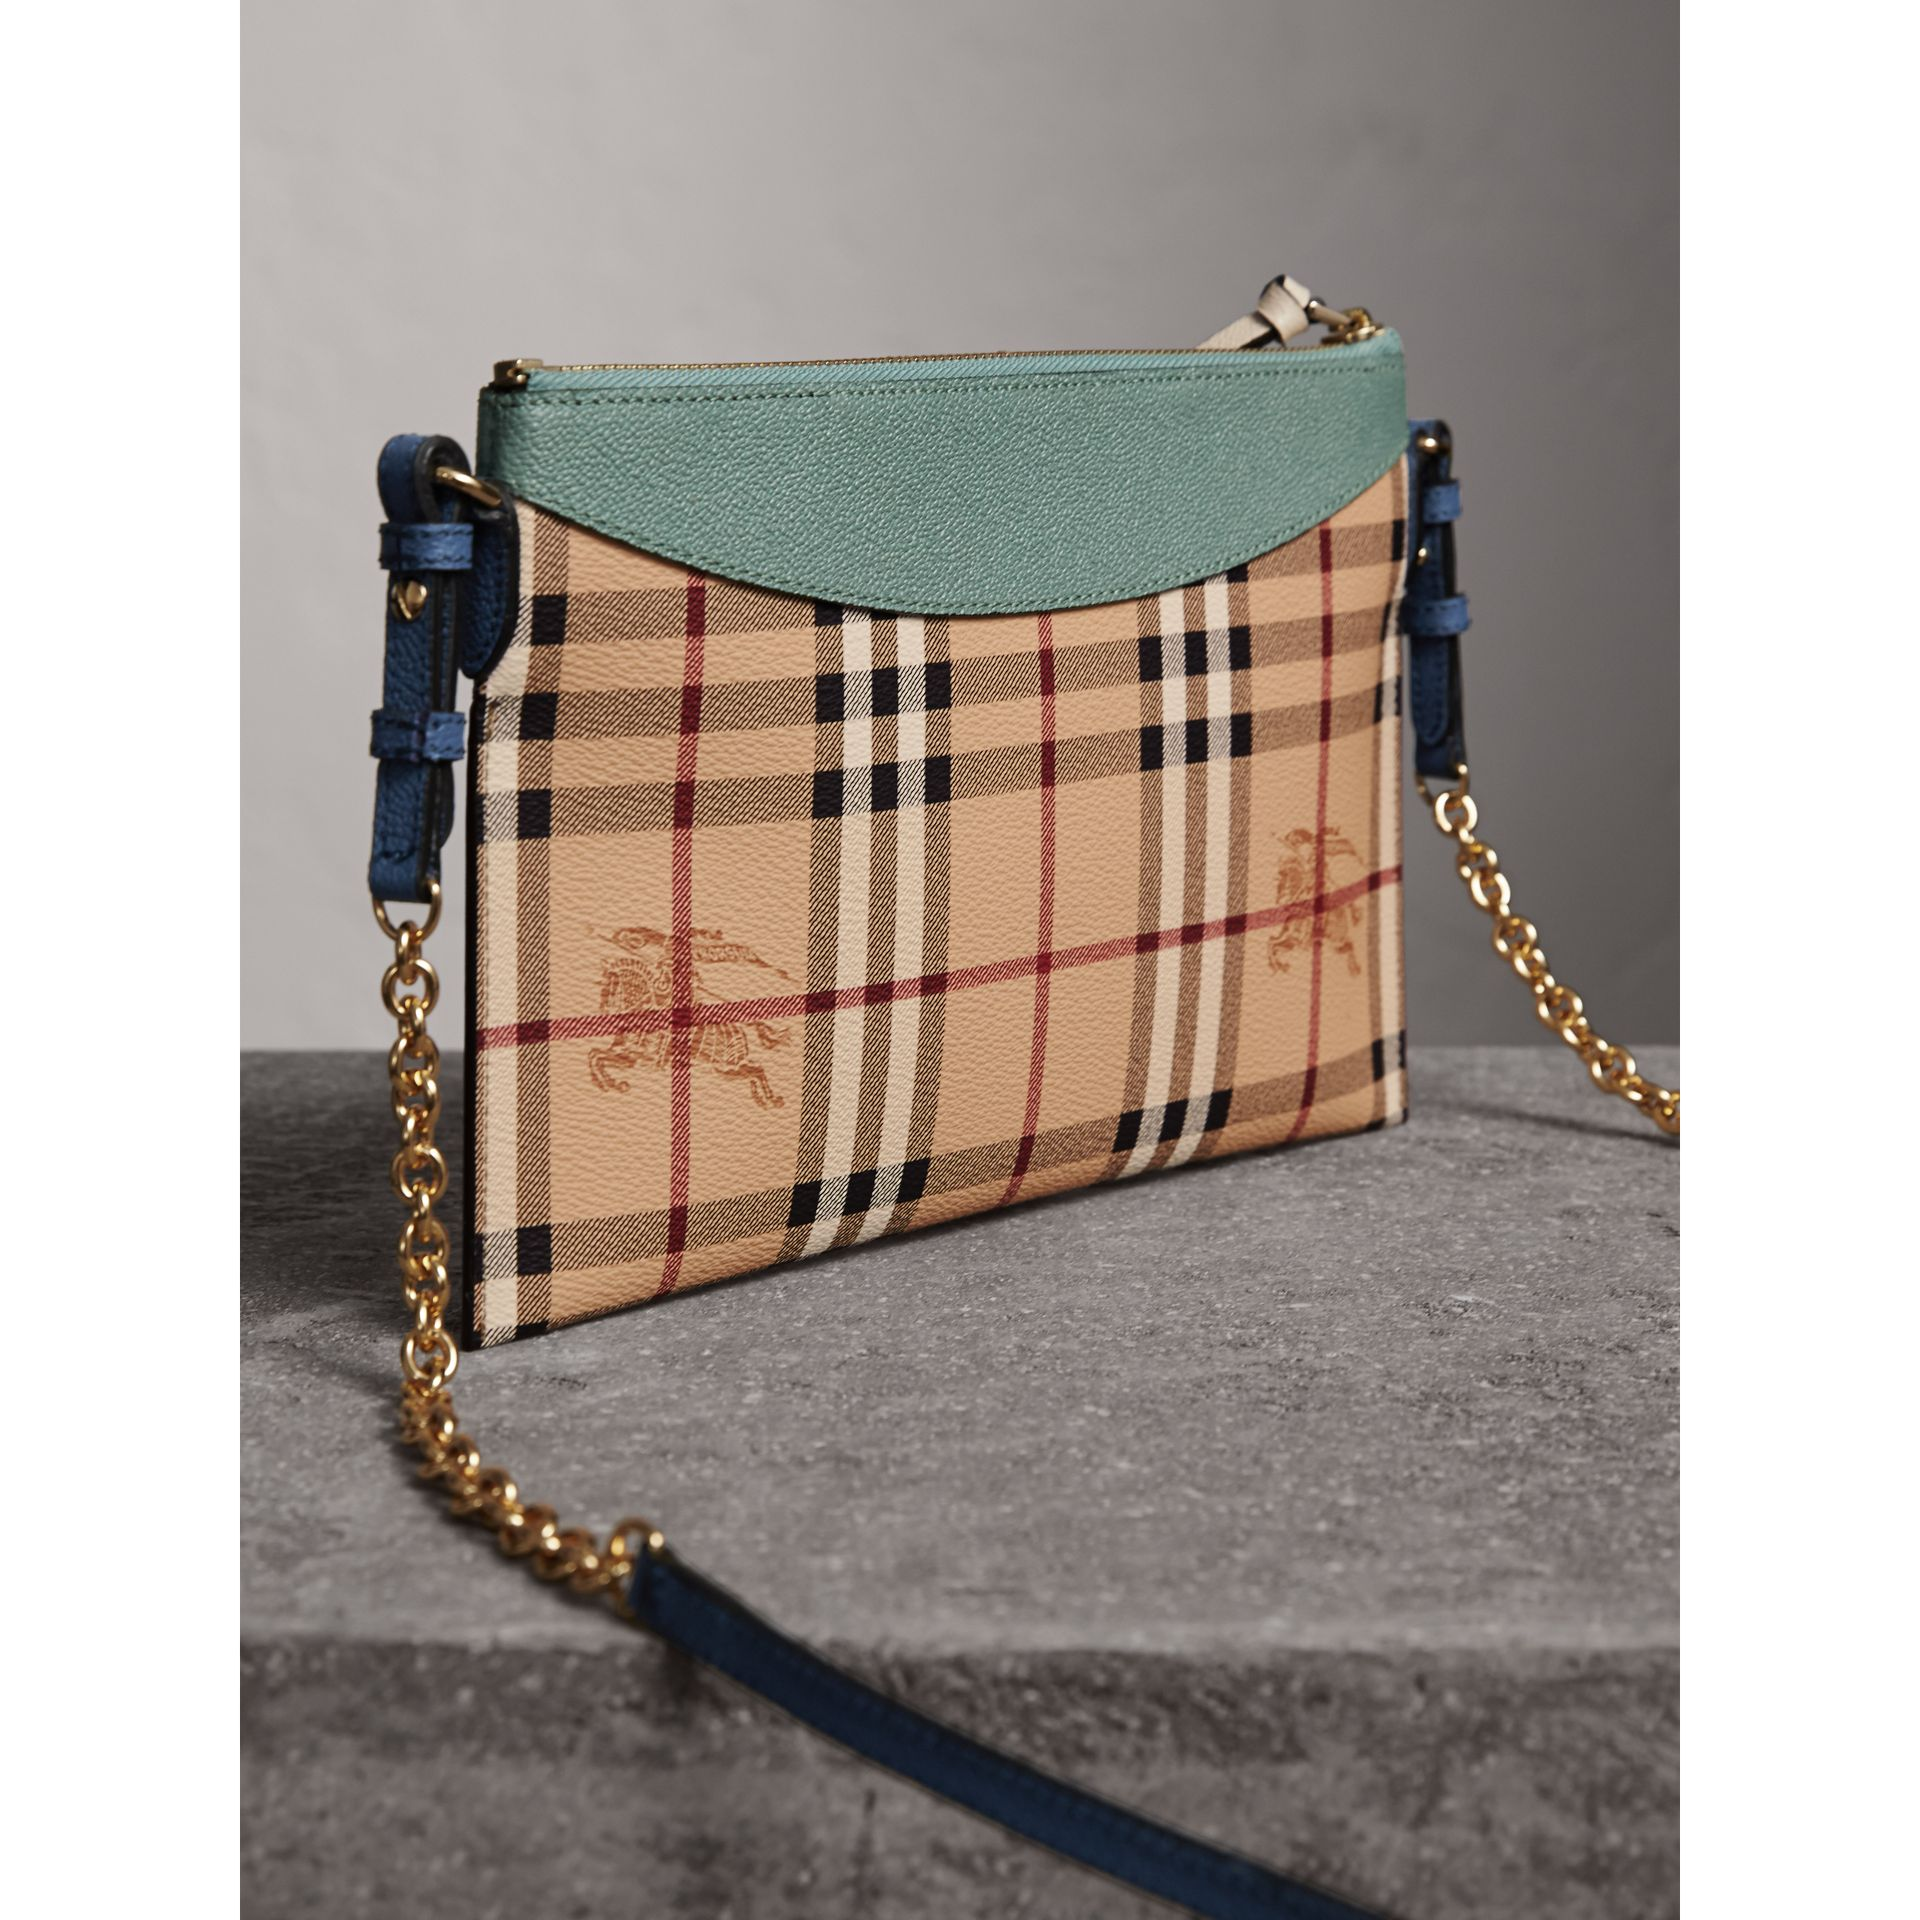 Haymarket Check and Two-tone Leather Clutch Bag in Eucalyptus Green/multicolour - Women | Burberry - gallery image 4